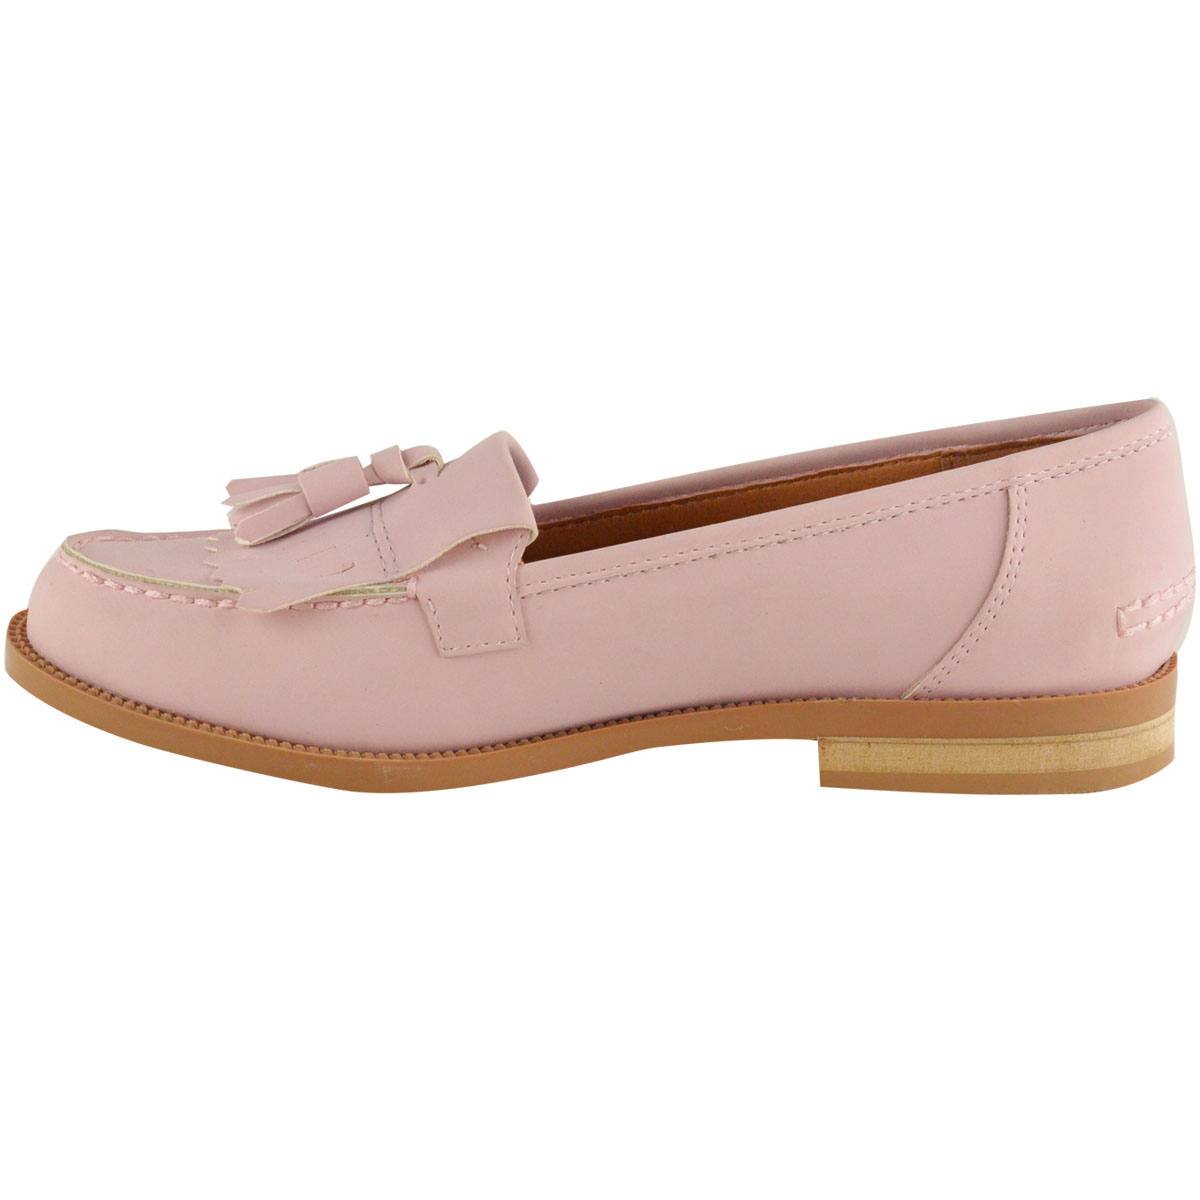 Free shipping on women's loafer flats, slip-on flats, and flat moccasins for women at lemkecollier.ga Shop from top brands like Tory Burch, TOMS, Sam Edelman and more. Totally free shipping & returns.